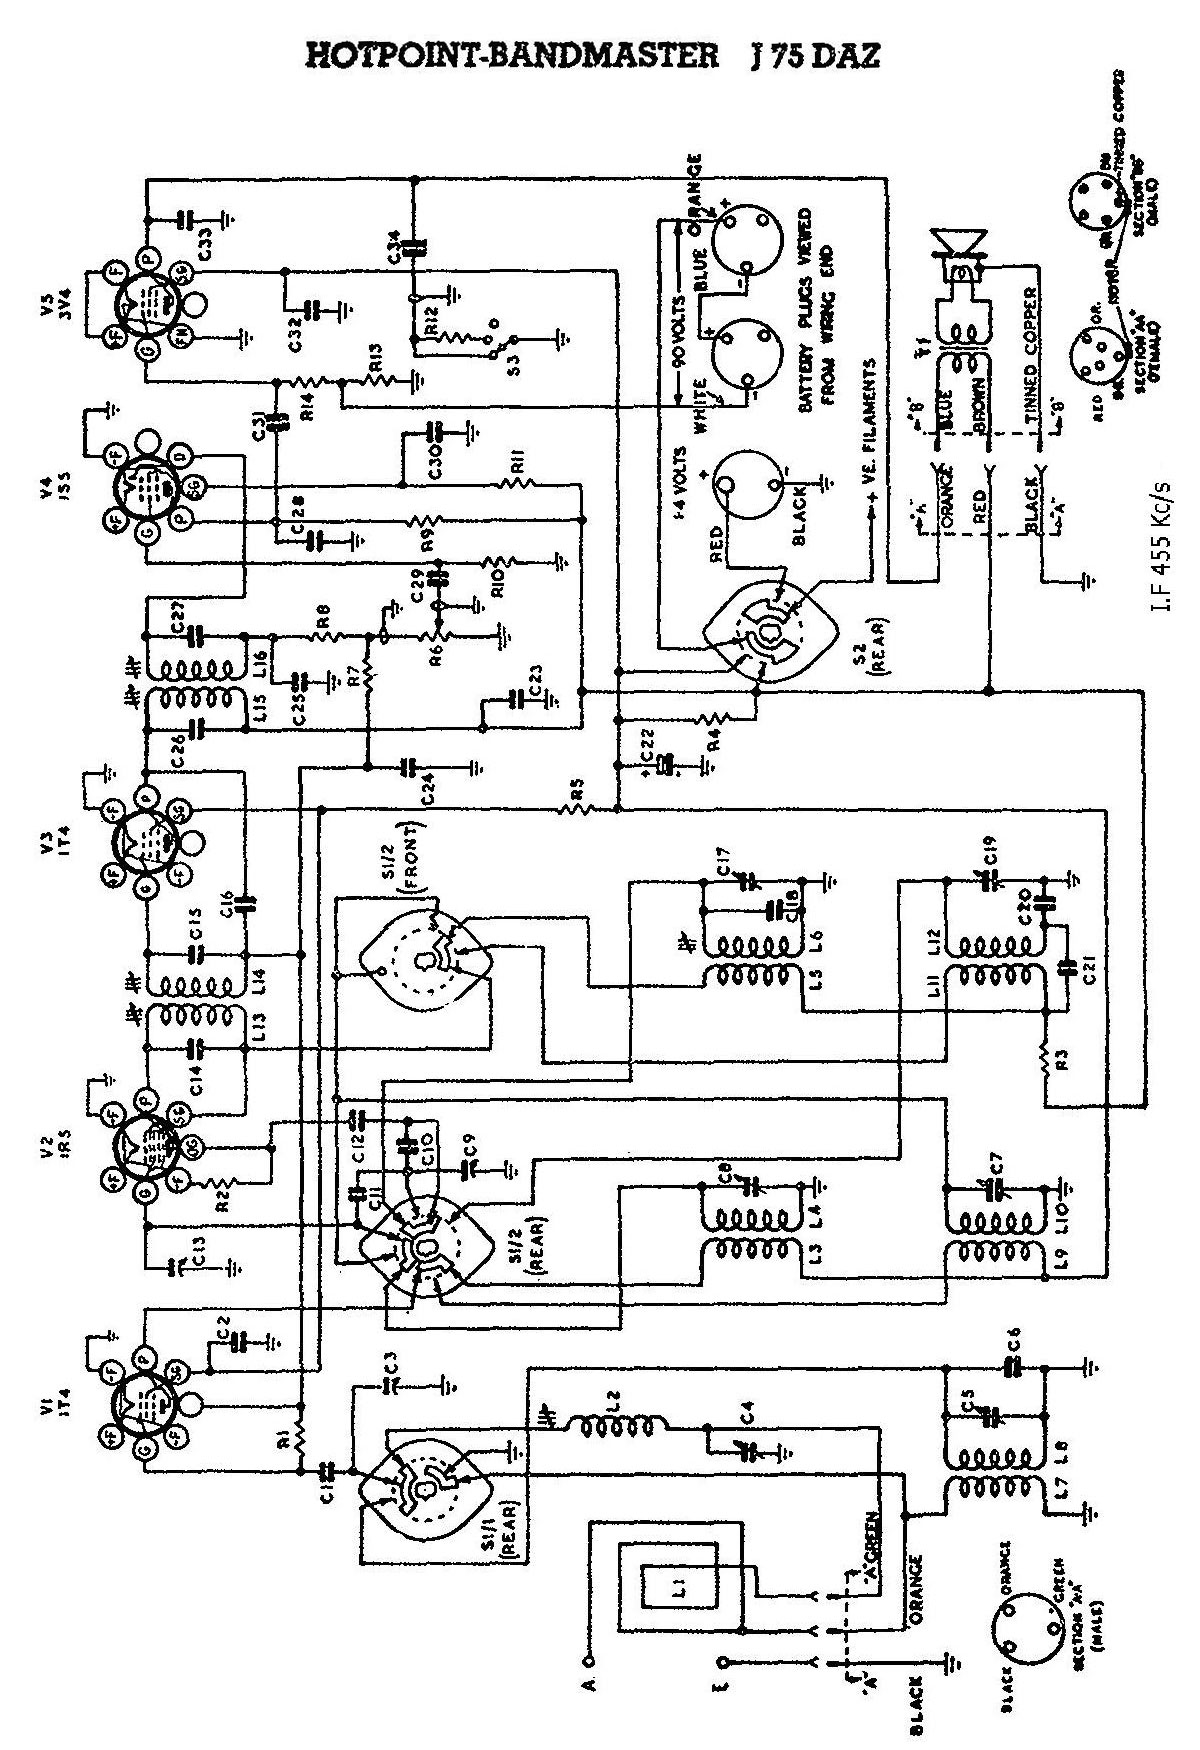 pin amana wiring diagram on pinterest